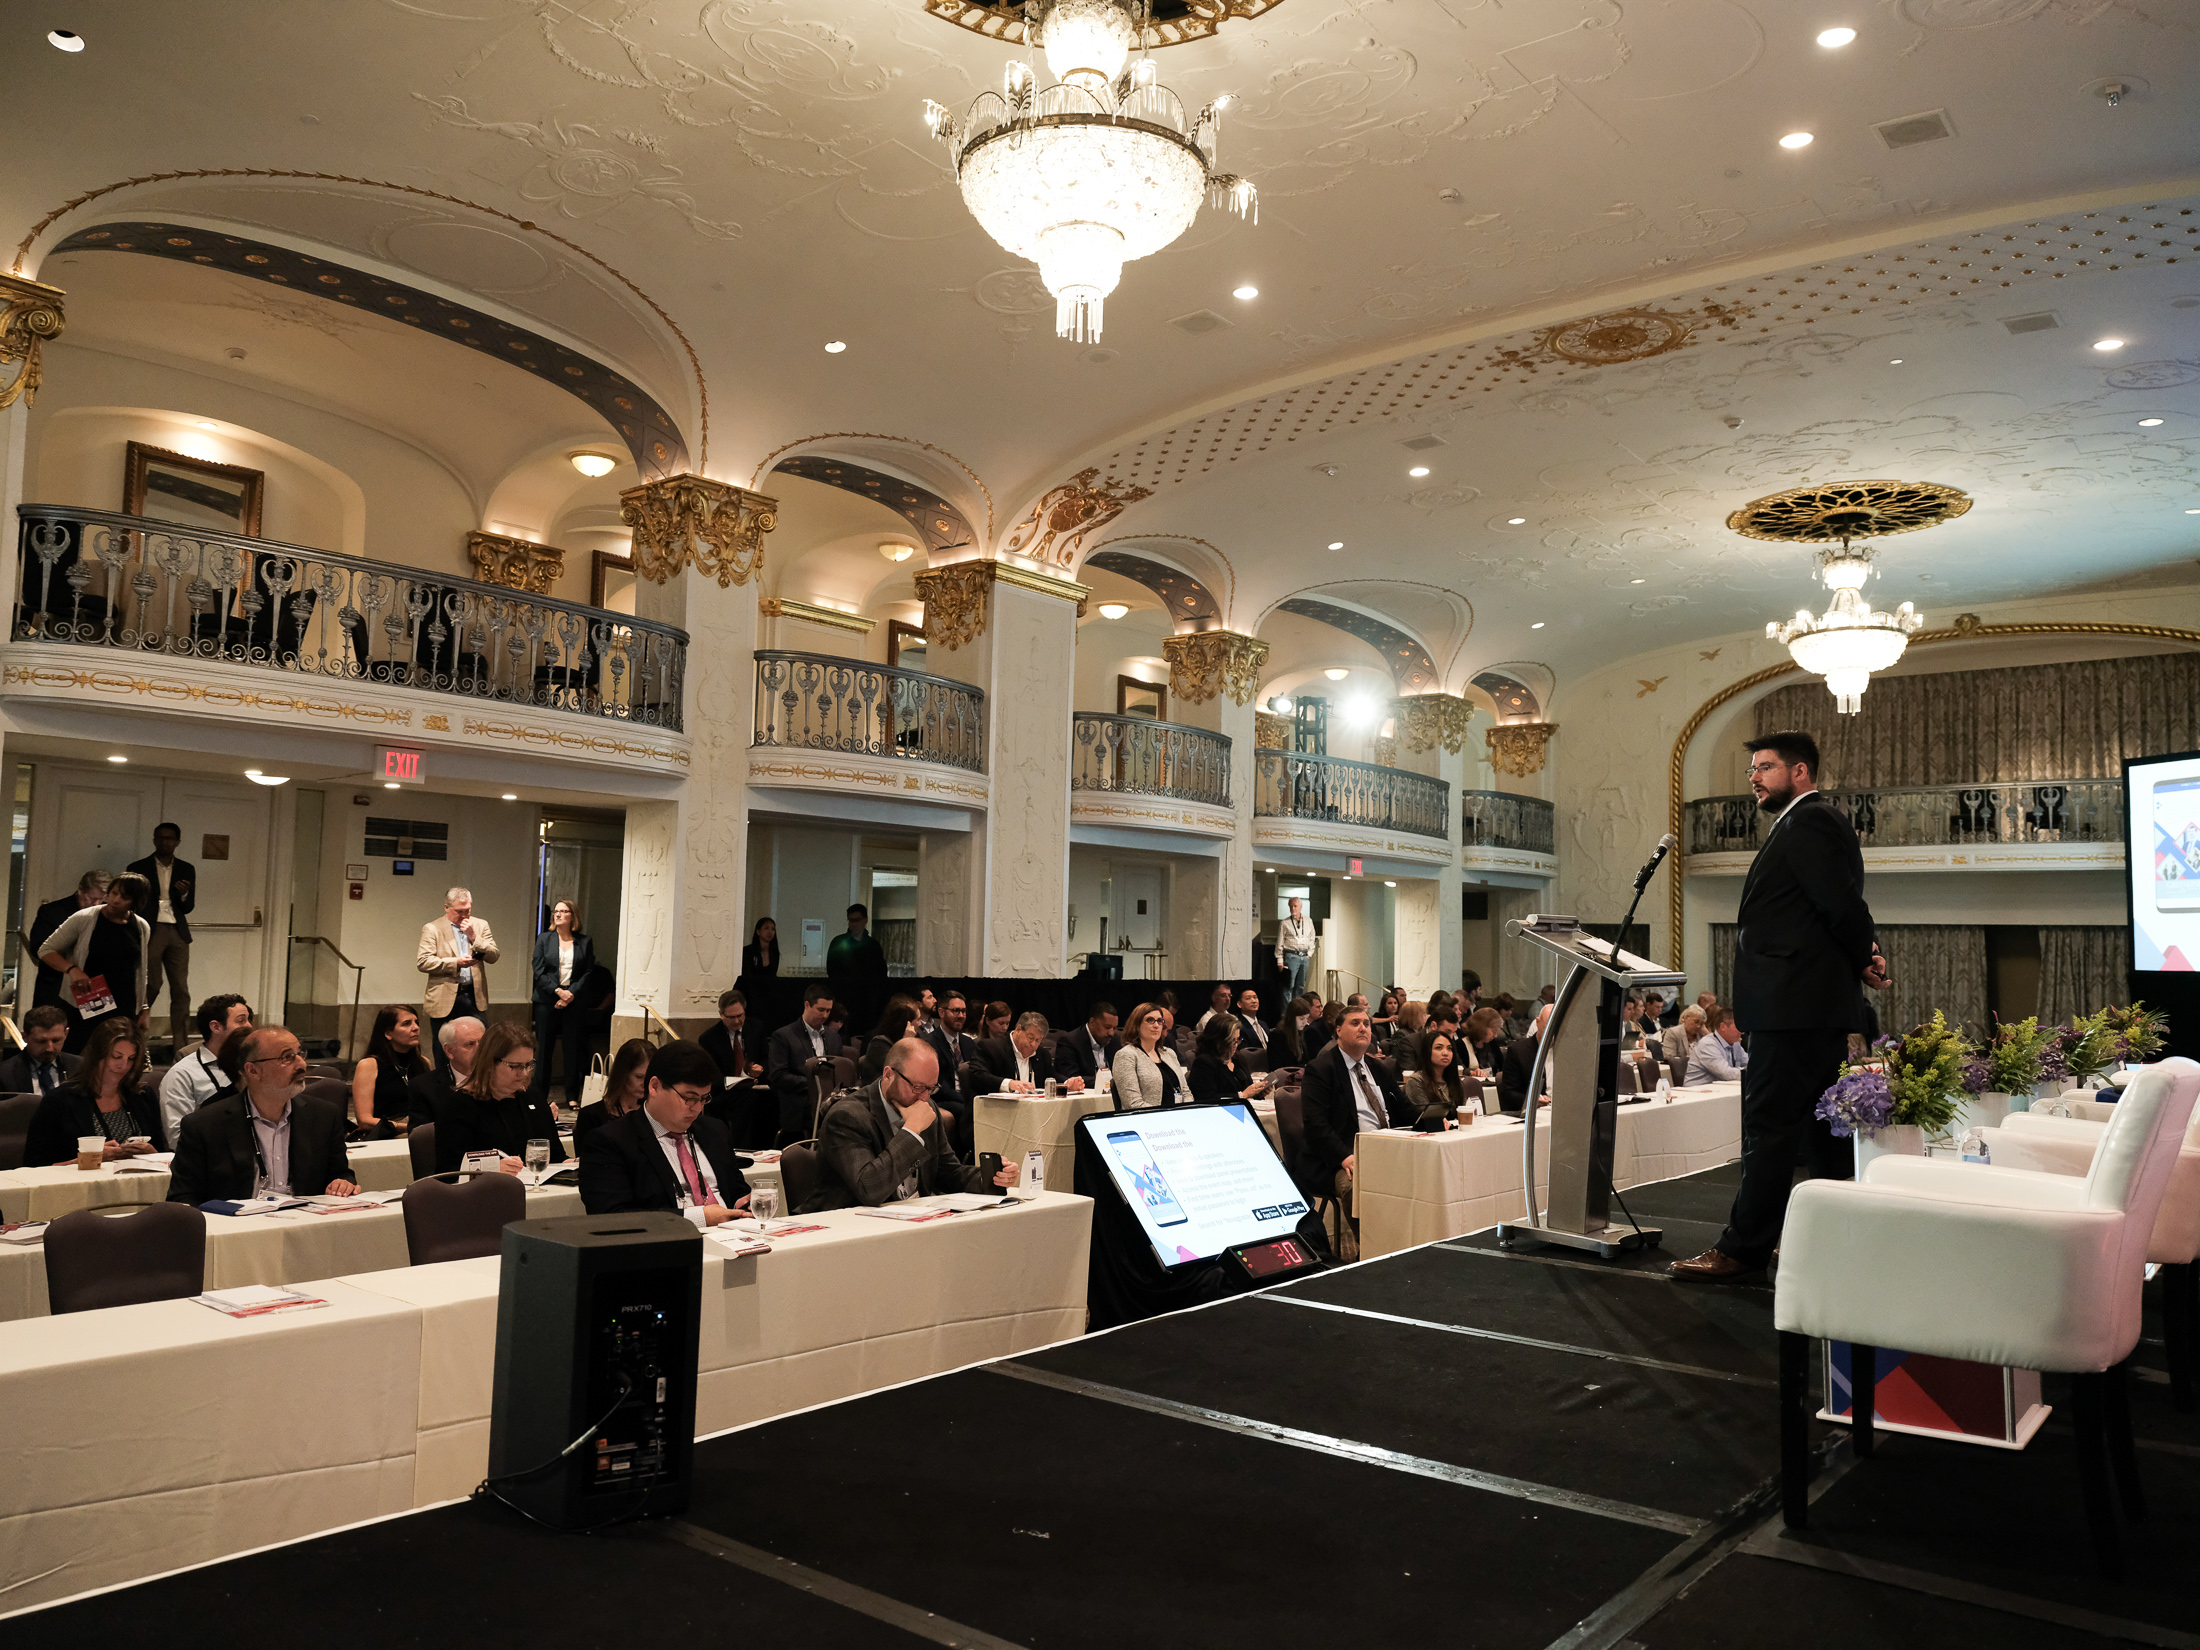 dc-conference-photographer-1454.jpg